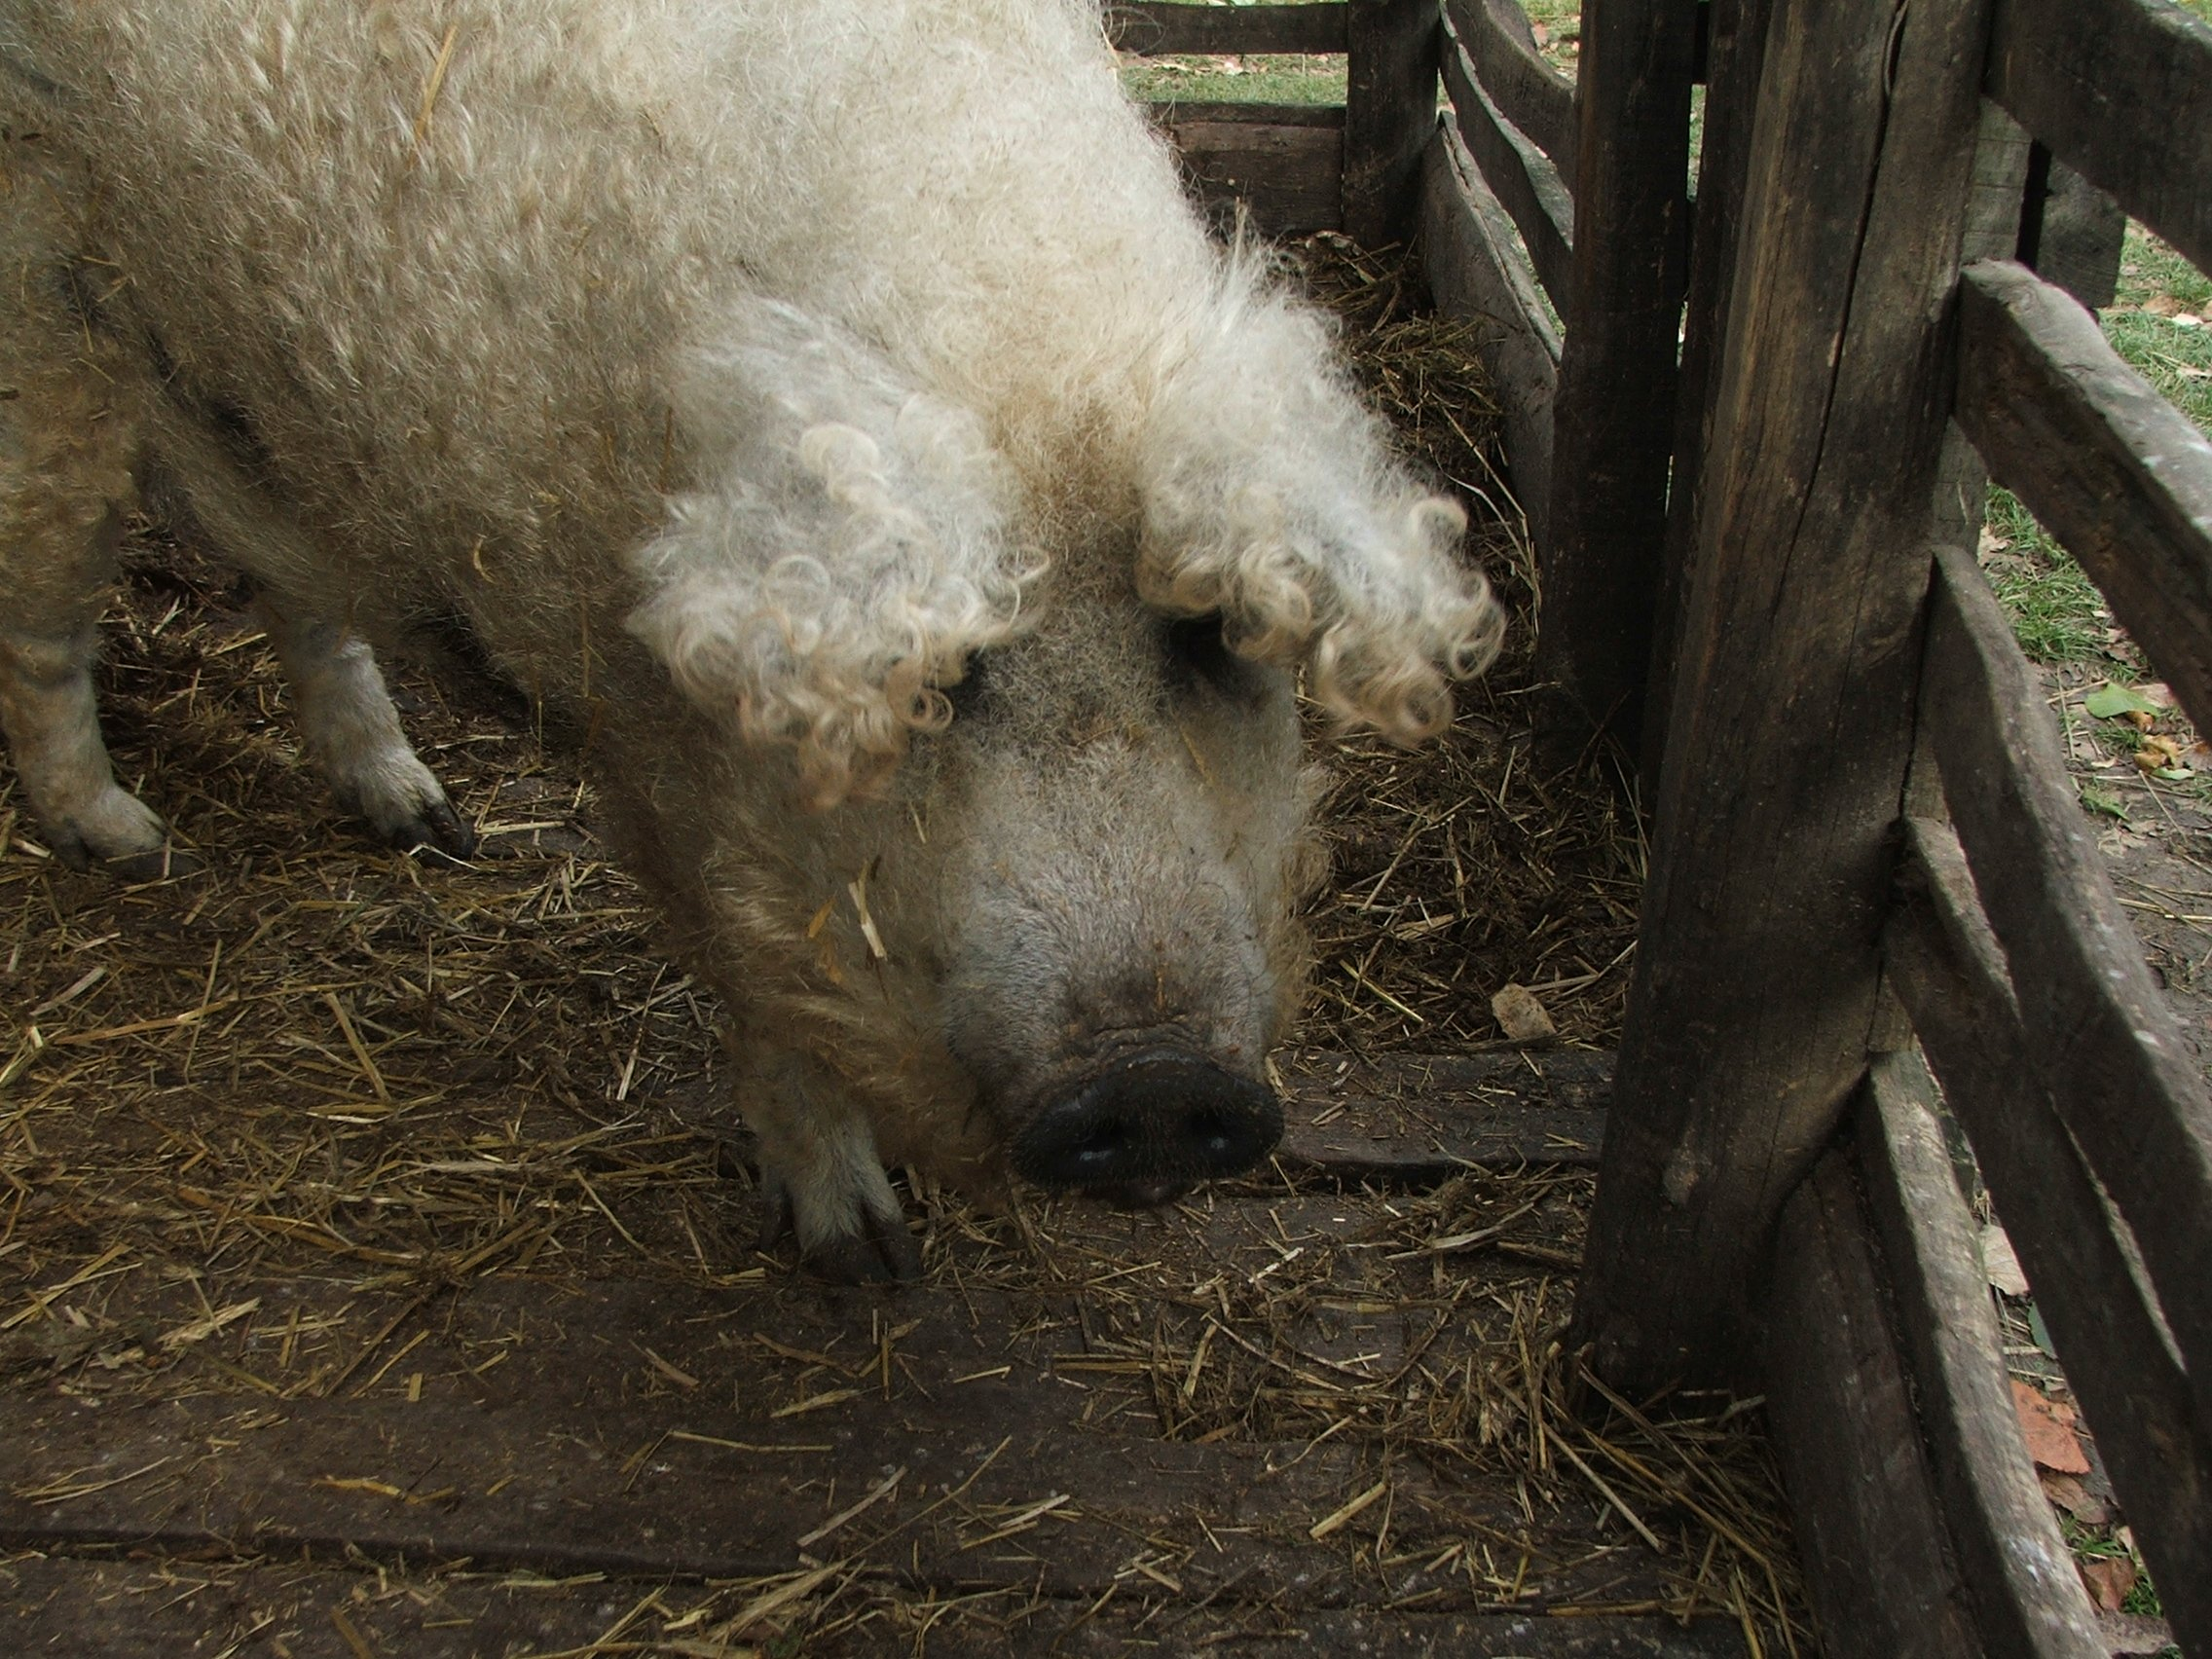 Mangalica, curly-haired pigs | Animals Zone